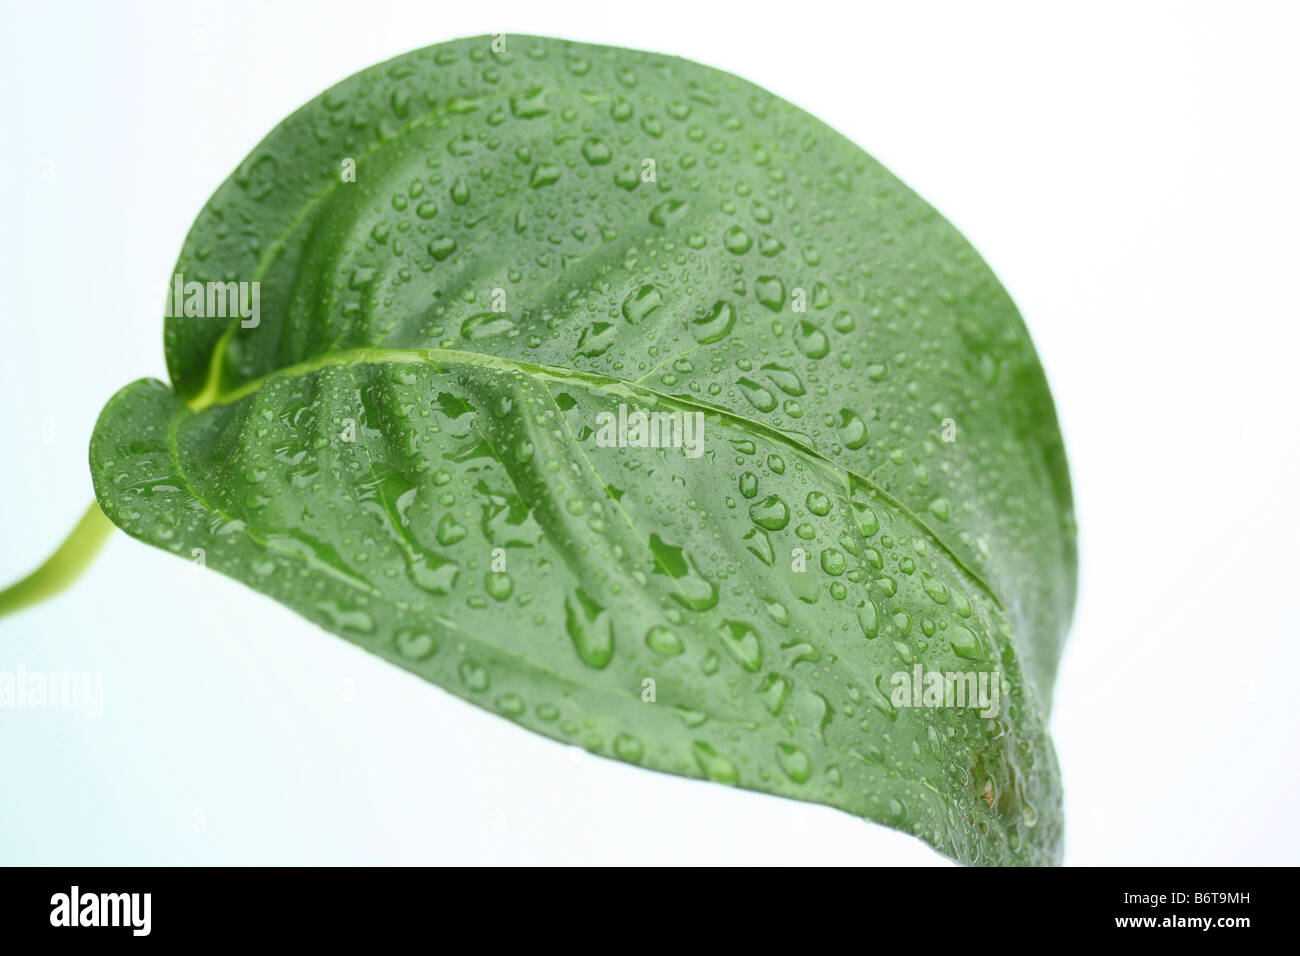 Anthurium leaf with droplets - Stock Image